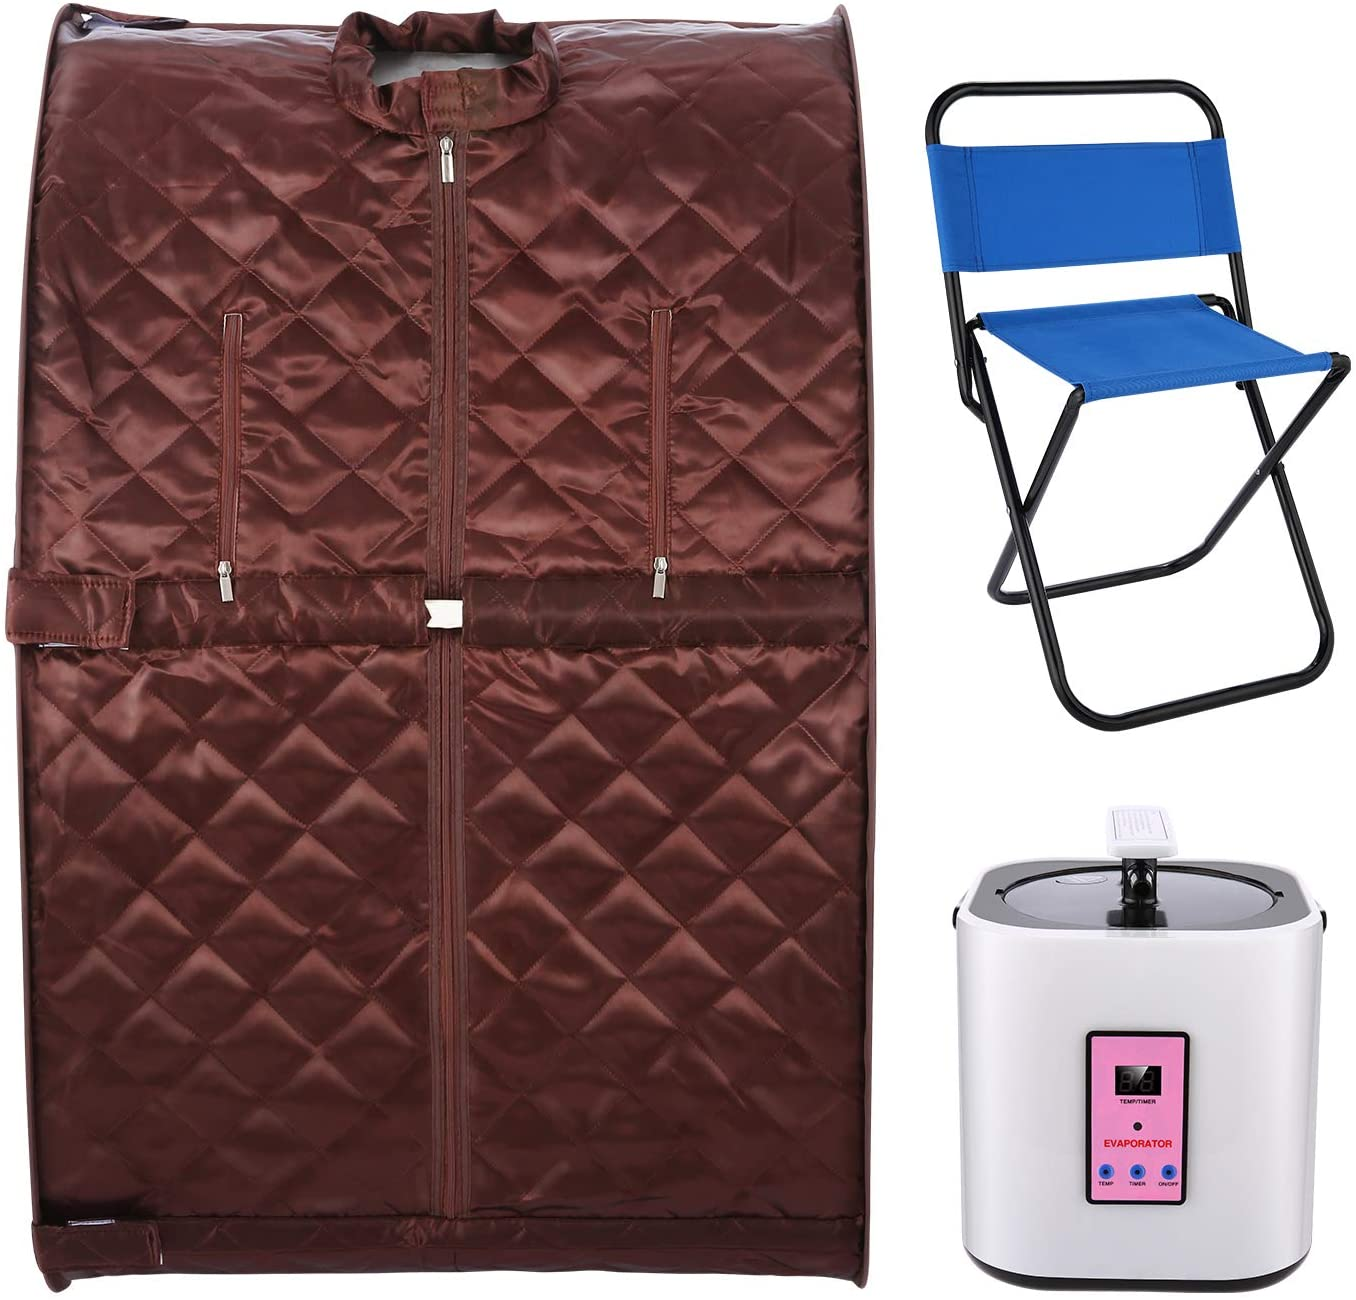 KGK Portable Steam Sauna Spa for Home Weight Loss, Detox, Relaxation, Personal Sauna for Women/Men, with Remote Control, Timer & Foldable Chair (Coffee)